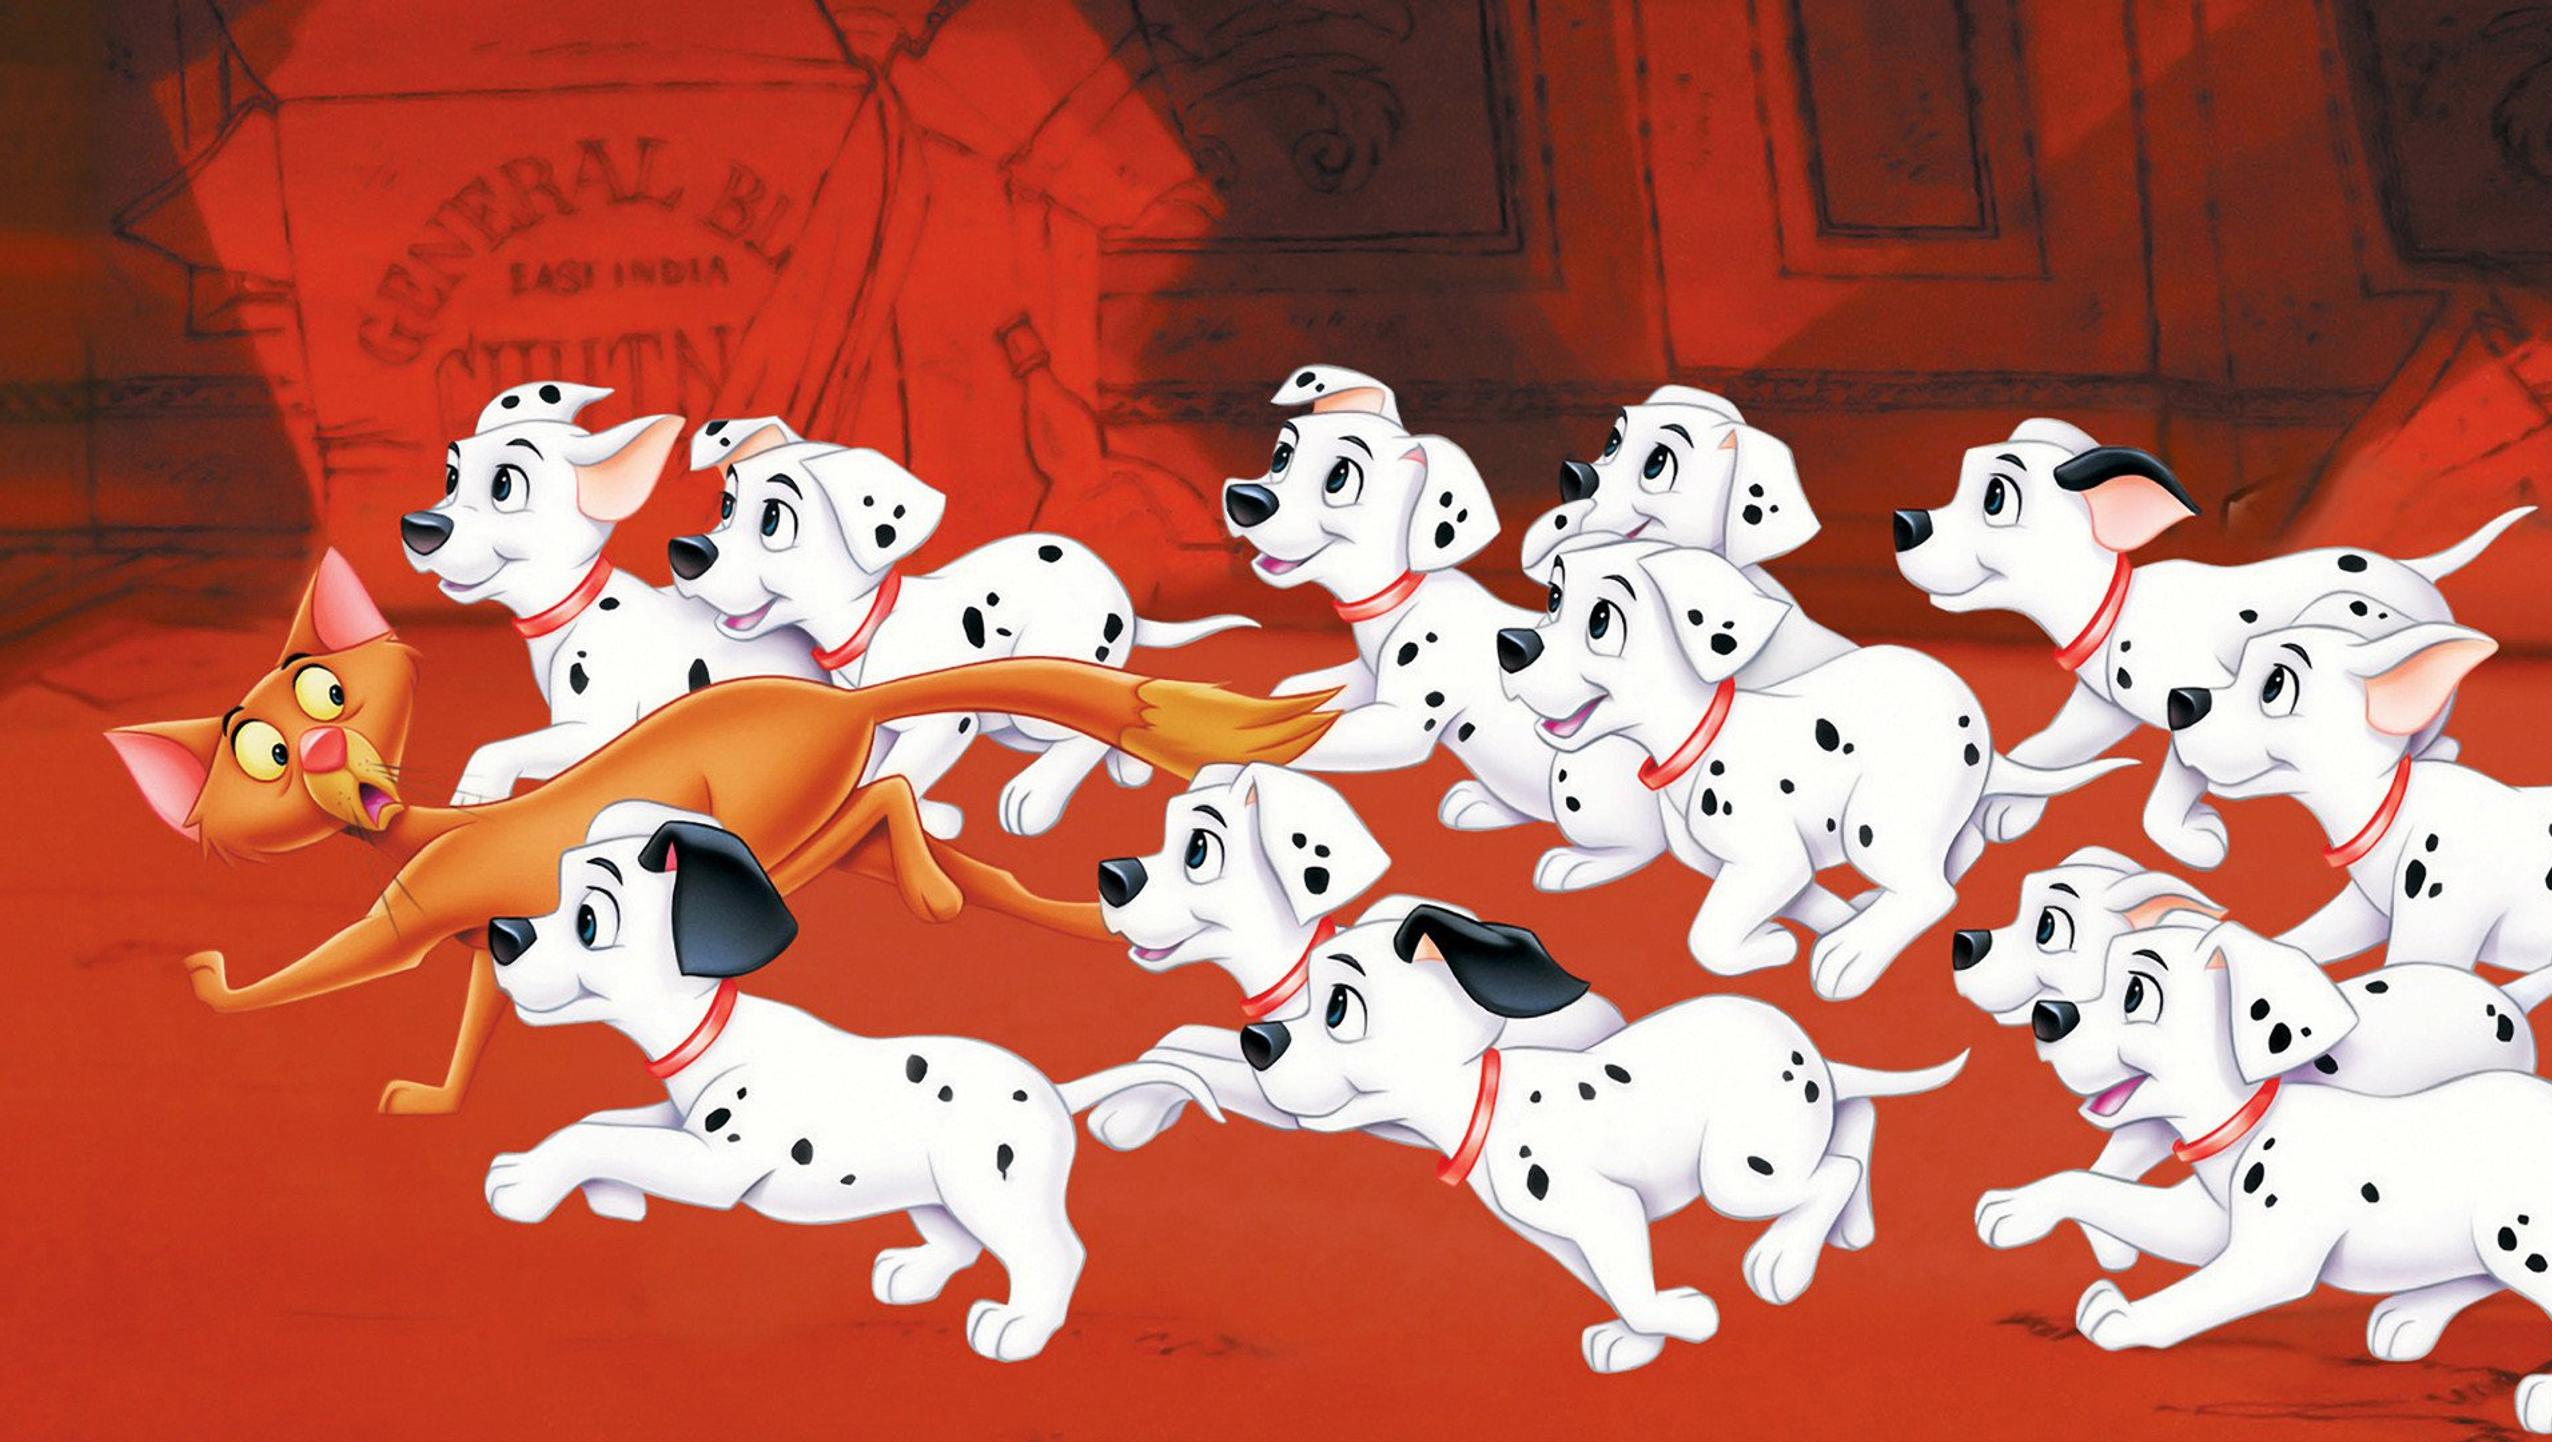 One Hundred And One Dalmatians 1961 Desktop Wallpaper Moviemania